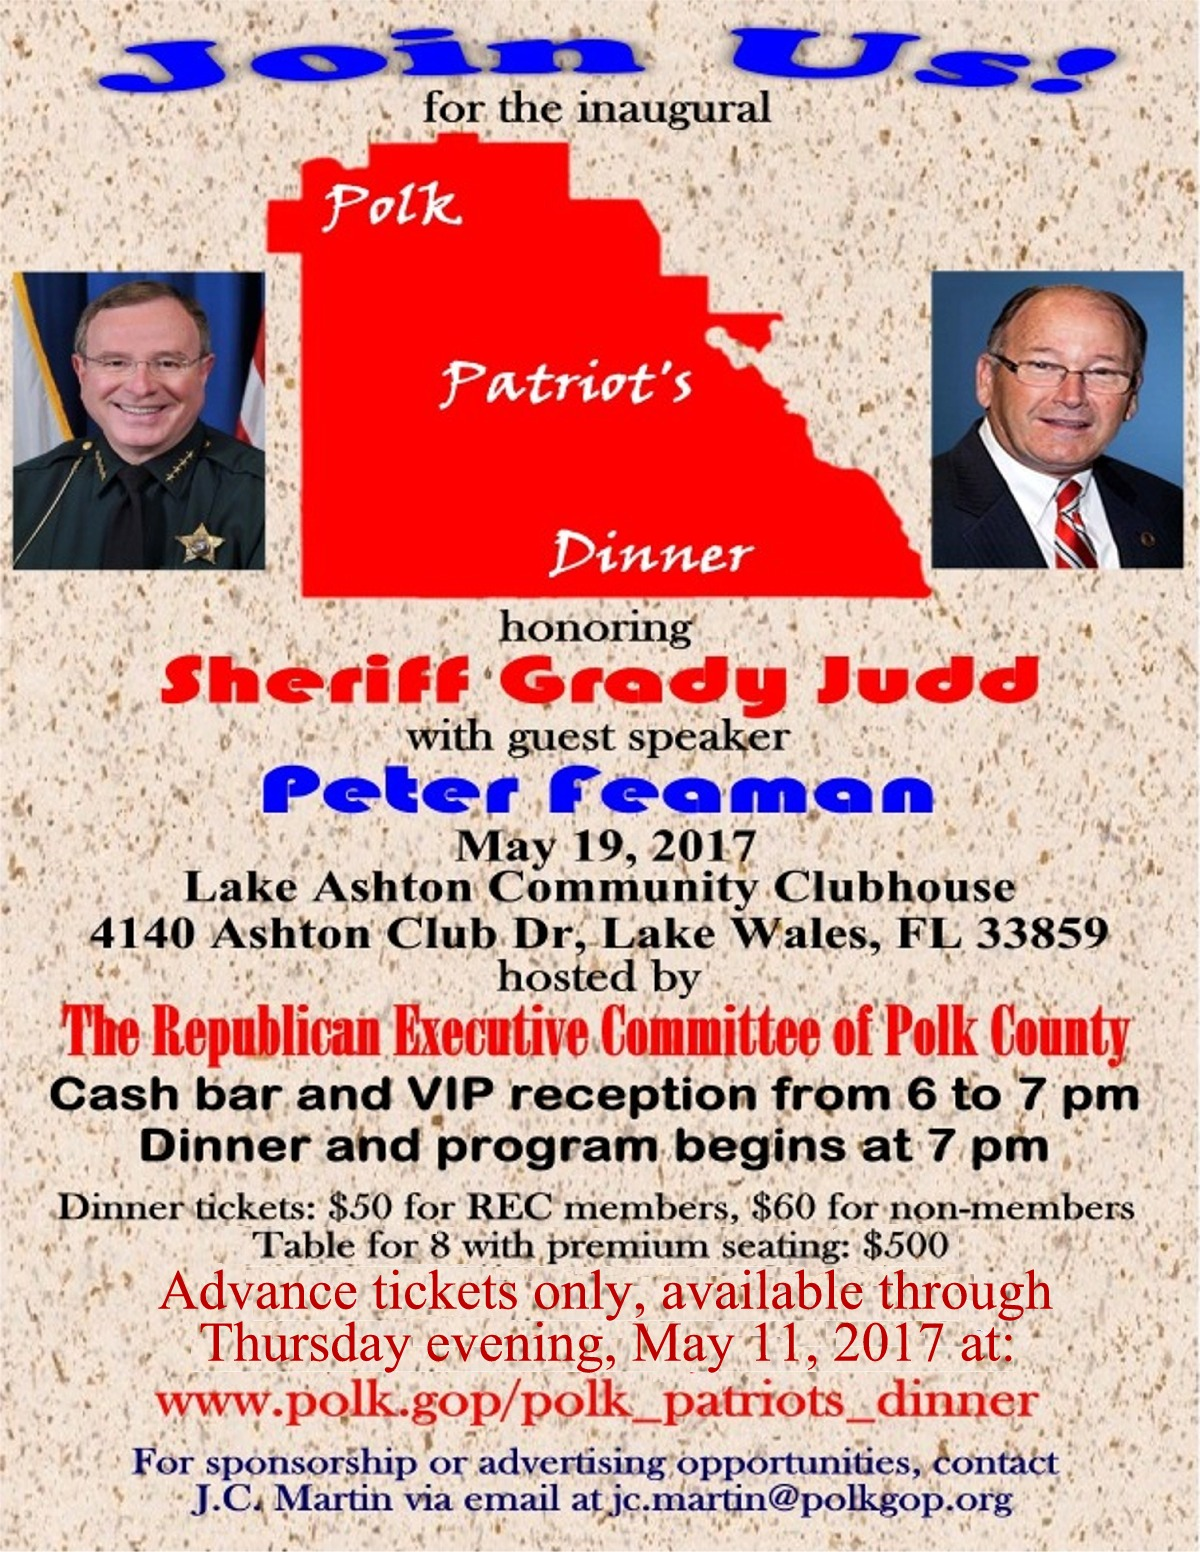 Polk_Patriots_Dinner_Flyer.jpg